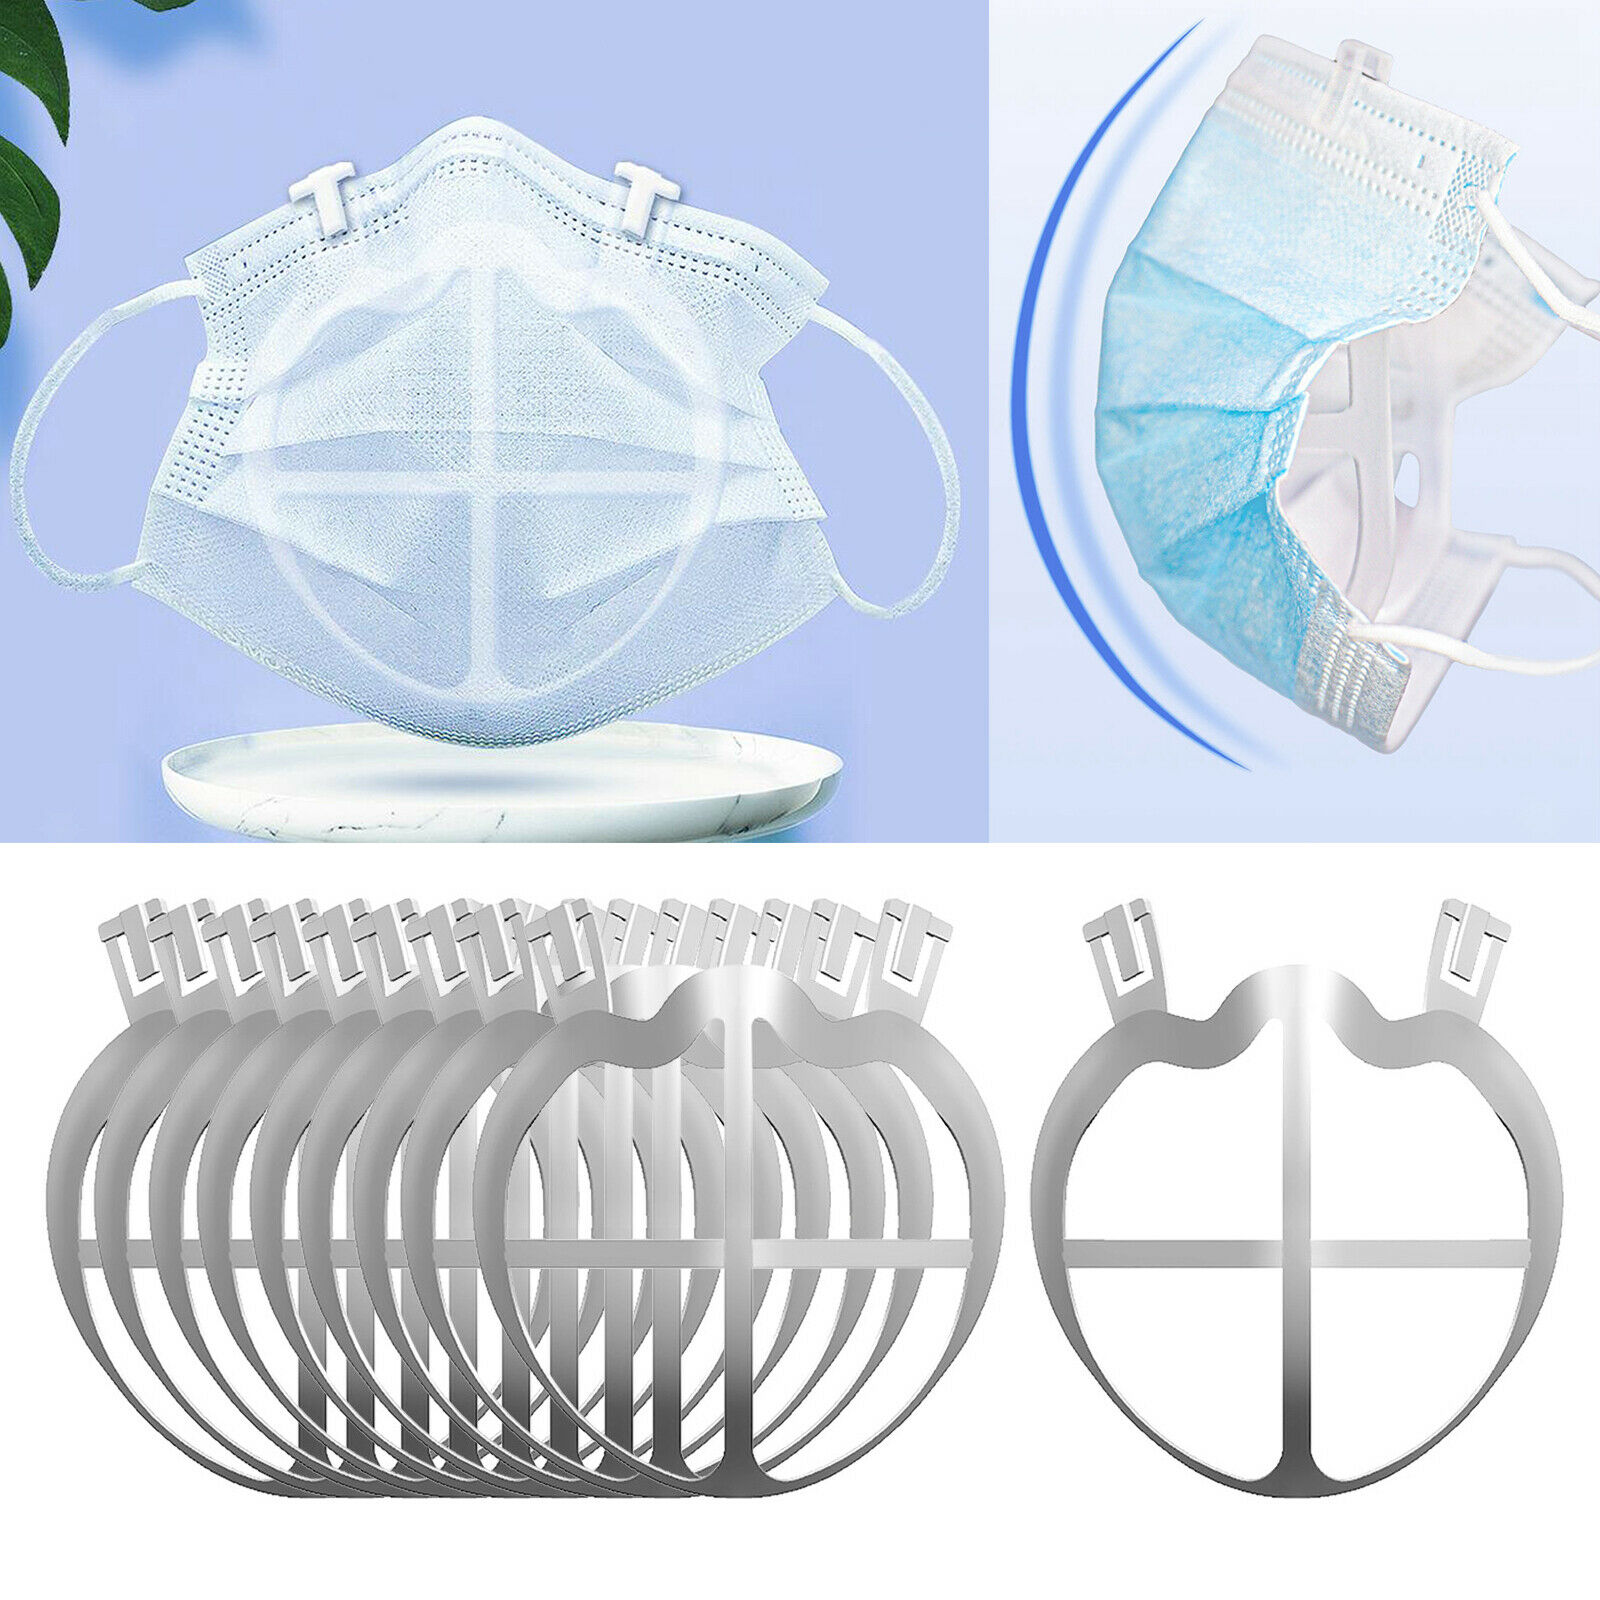 10 Pieces Face Mask Bracket Support Space Rack Keeper Breathable Frame